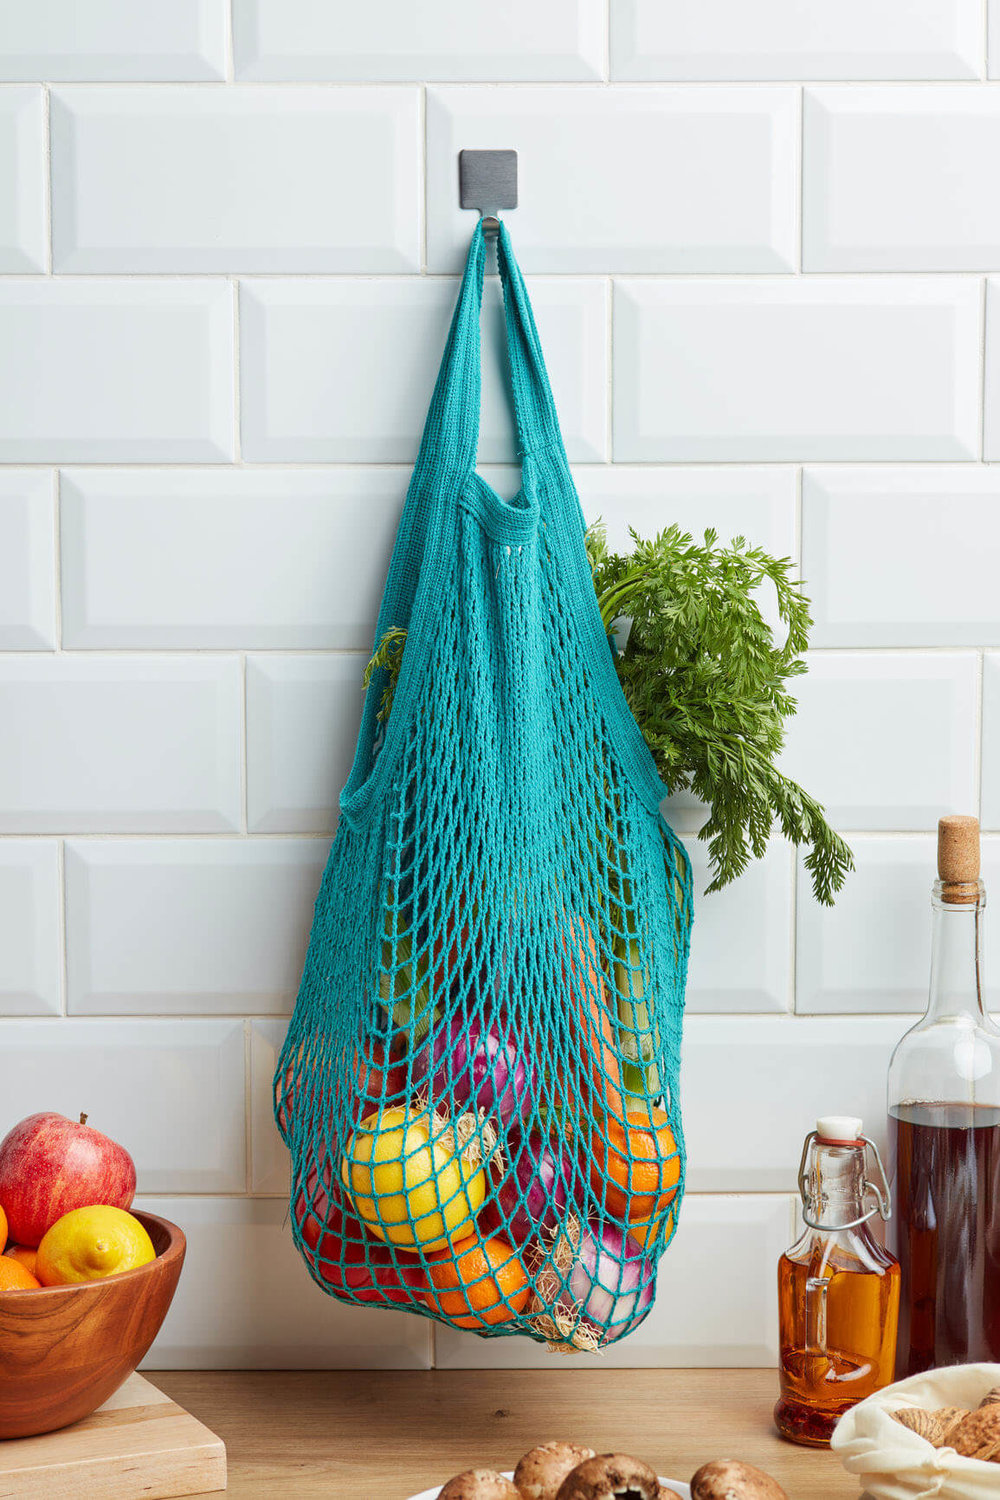 Mesh tote bag for groceries